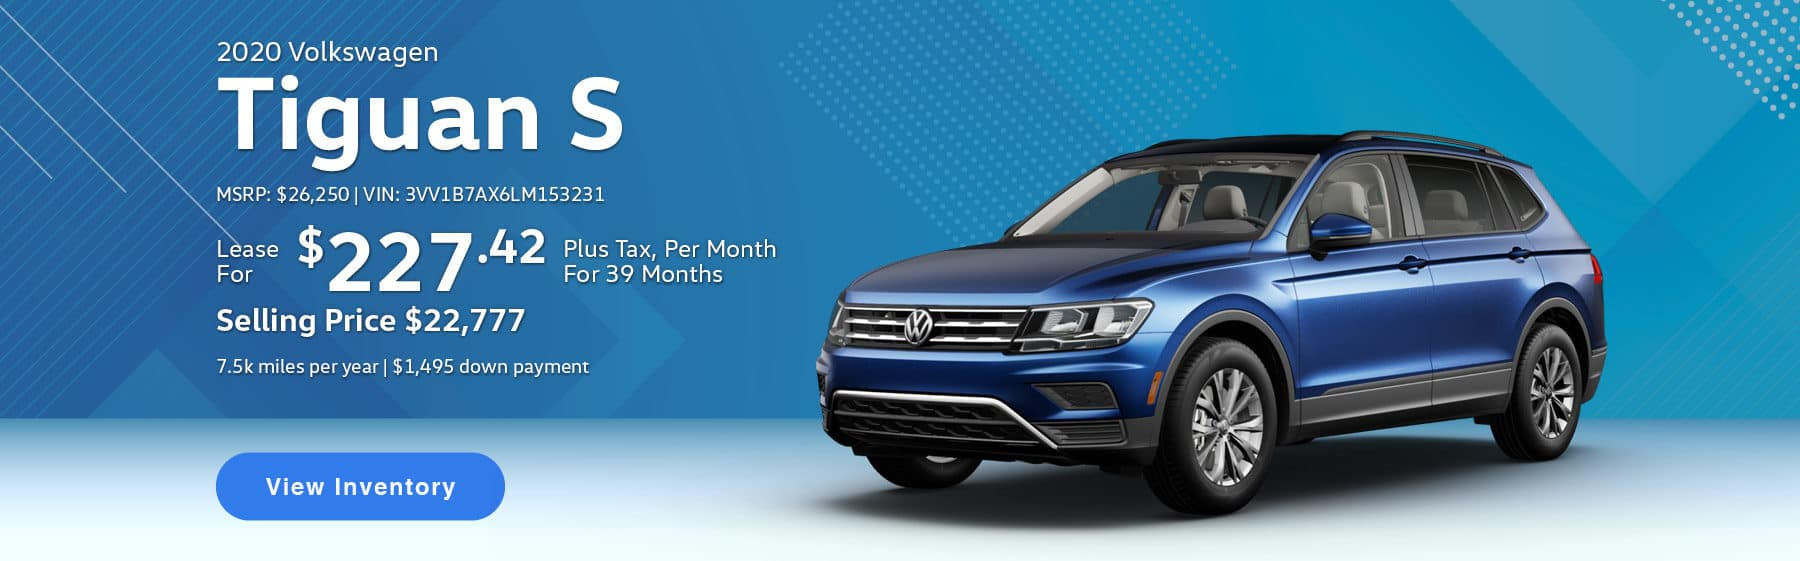 Lease the 2020 Tiguan S for $227.42 per month, plus tax for 39 months.